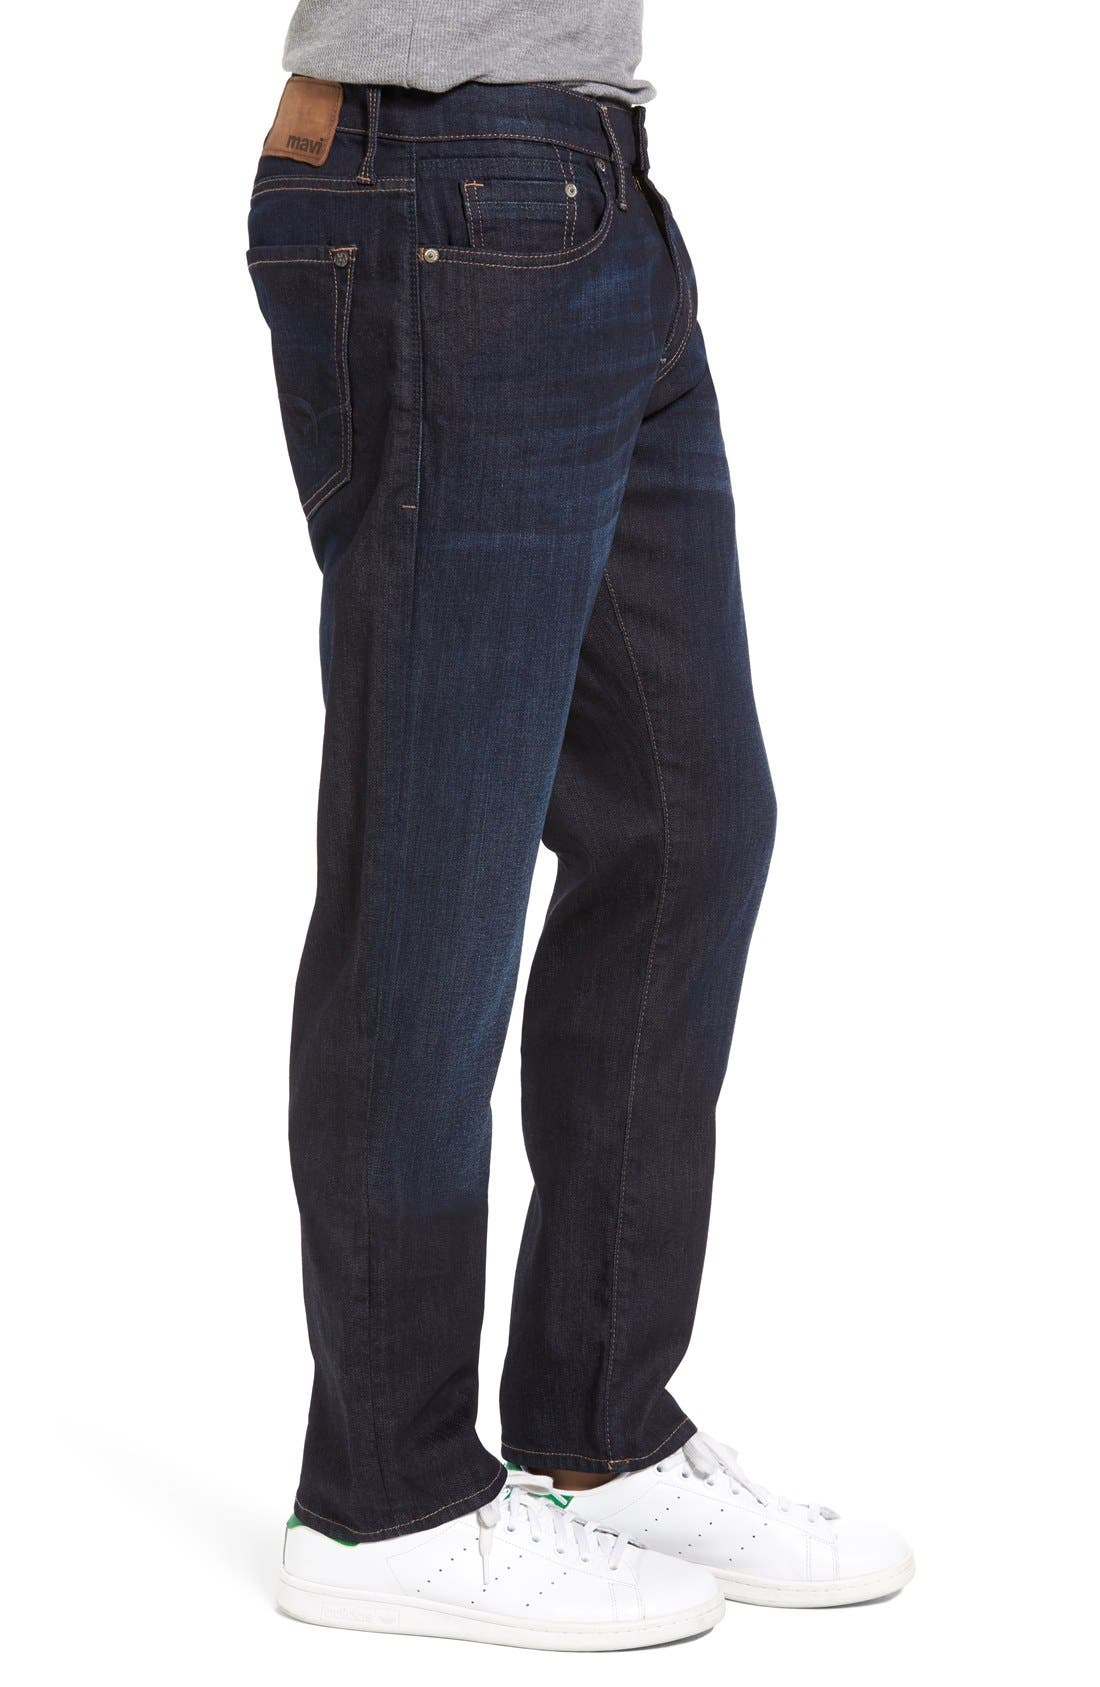 Marcus Slim Straight Leg Jeans,                             Alternate thumbnail 3, color,                             Rinse Brushed Williamsburg